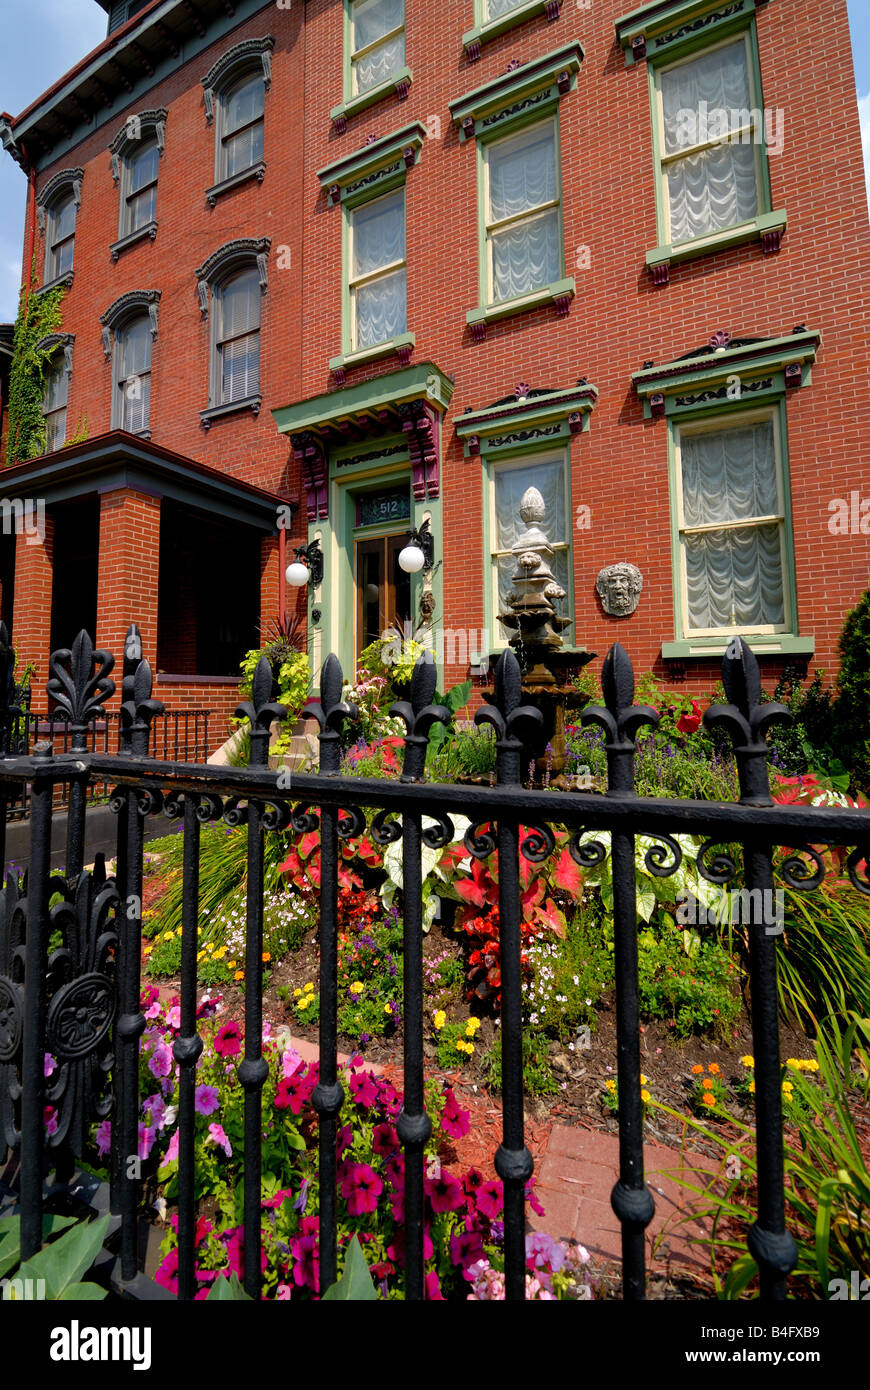 This historic Victorian home can be seen in Pittsburgh Pennsylvania's Mexican War Streets neighborhood. - Stock Image